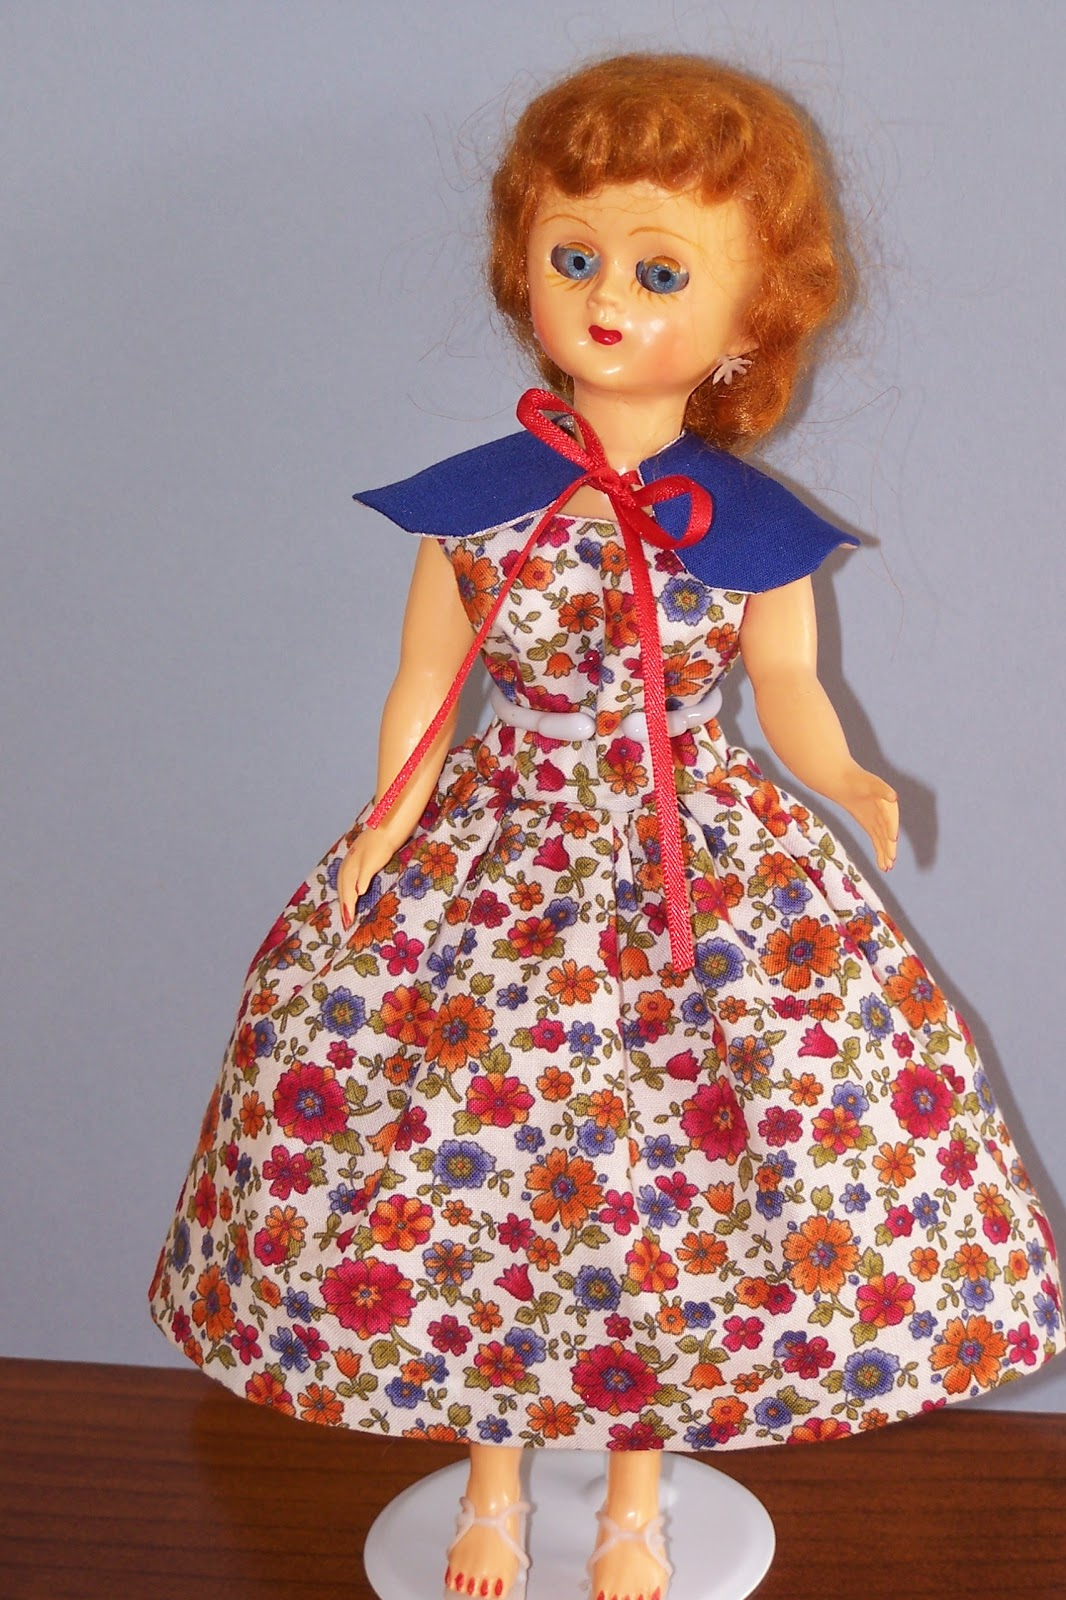 The Dolls Between Us: Lizzie's Arty Crafty 'n Dolls: Dolls! Finished Dress